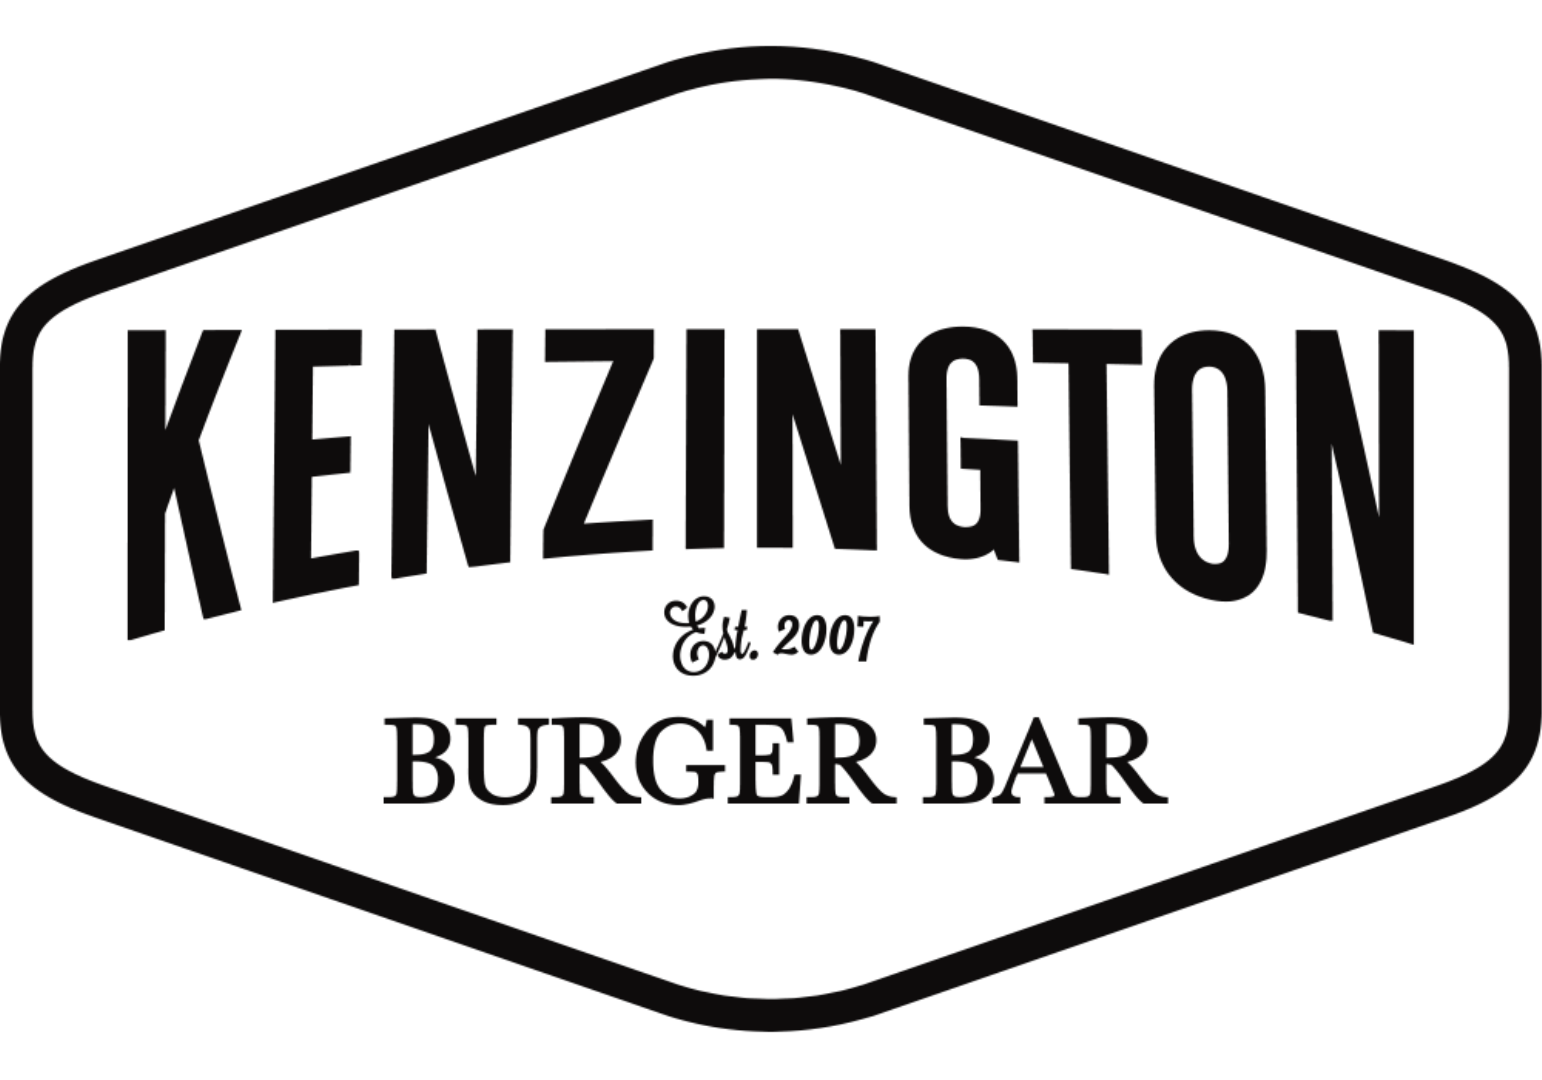 Kenzington Burger Bar - Barrie - Bryne Dr  Restaurant - Picture